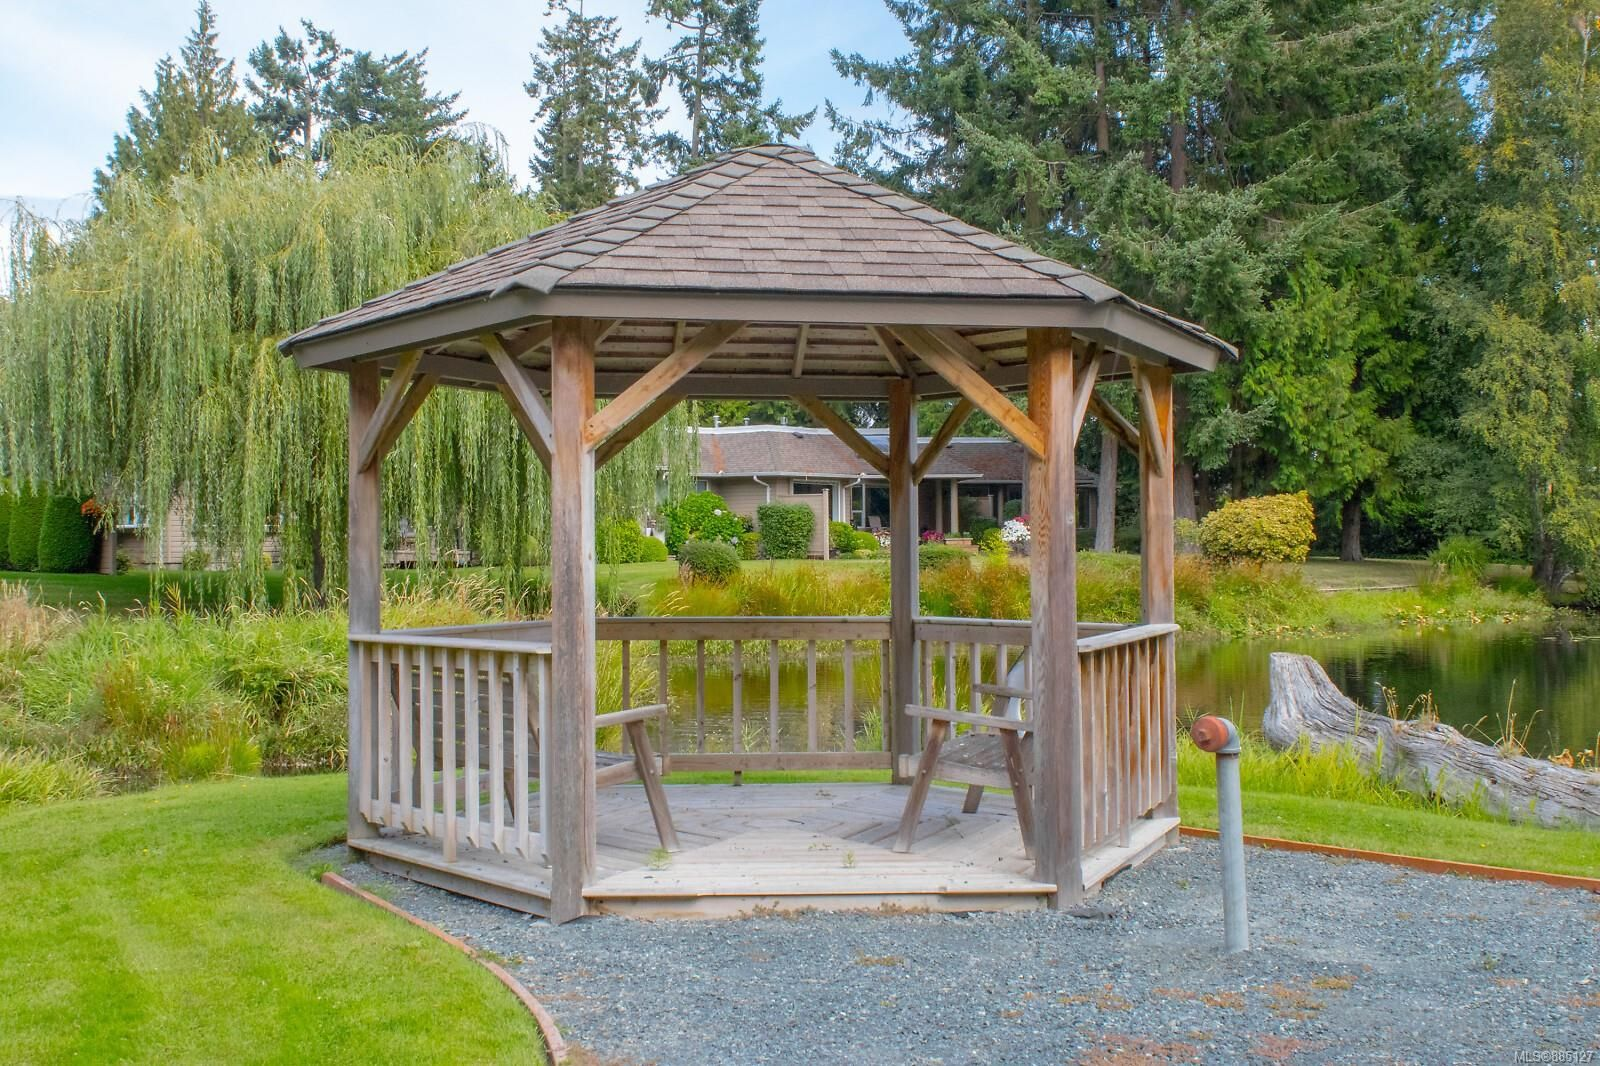 Photo 60: Photos: 26 529 Johnstone Rd in : PQ French Creek Row/Townhouse for sale (Parksville/Qualicum)  : MLS®# 885127